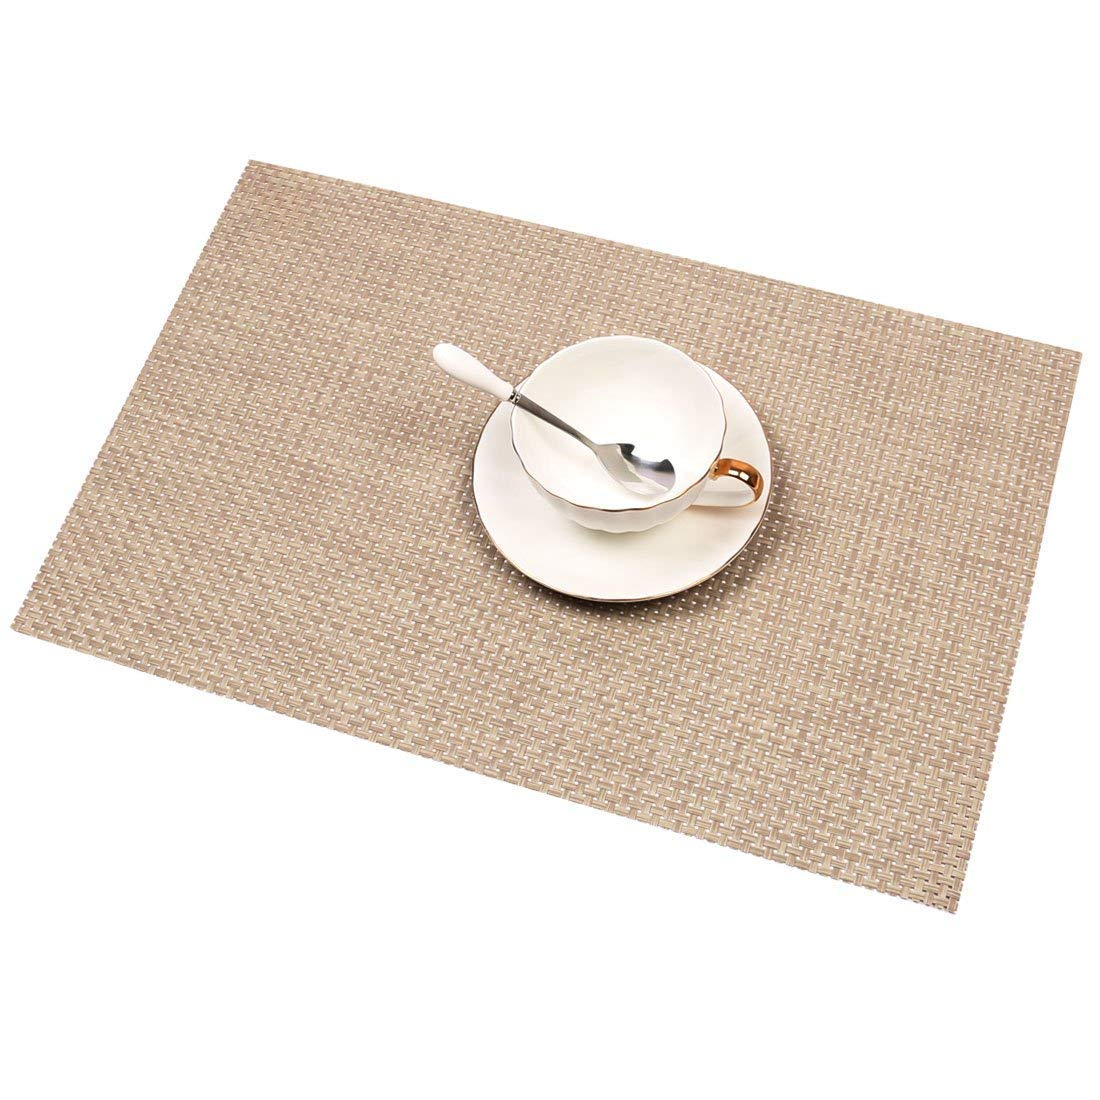 Homcomoda Placemats for Dining Table Set of 6 Place Mats for ...